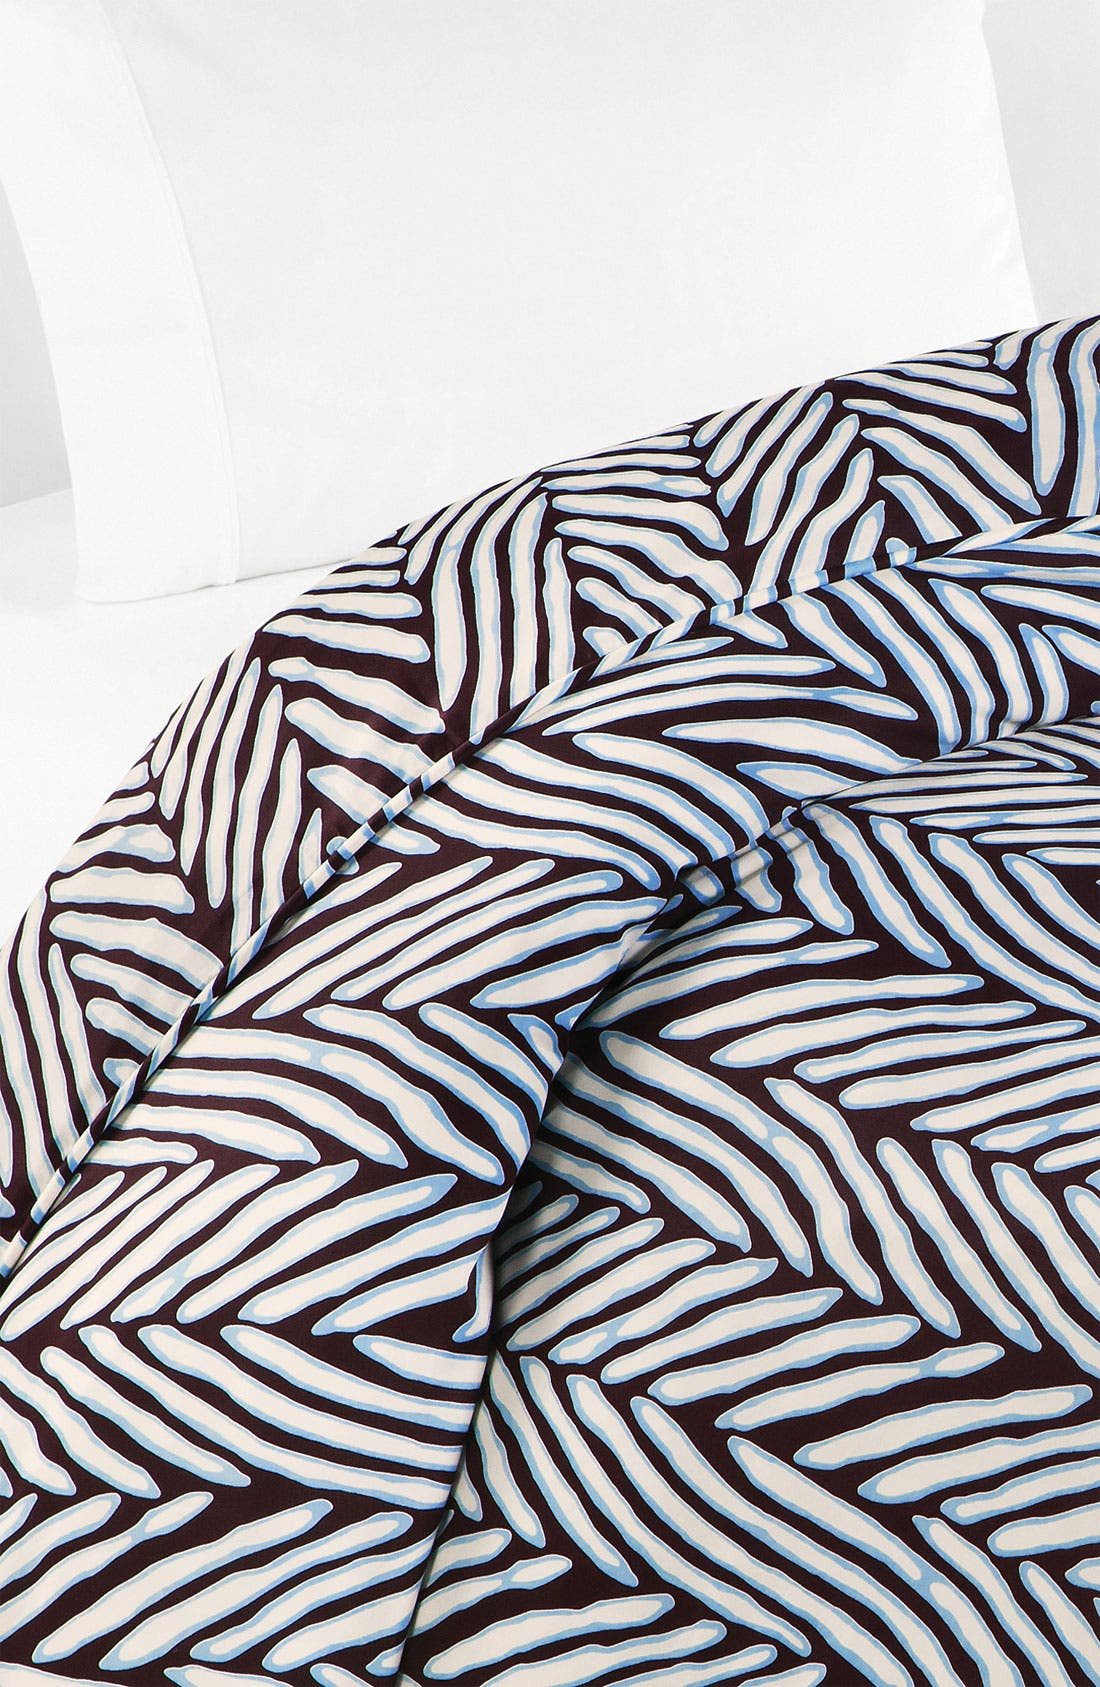 Alternate Image 1 Selected - Diane von Furstenberg 'Herringbone' 300 Thread Count Duvet Cover